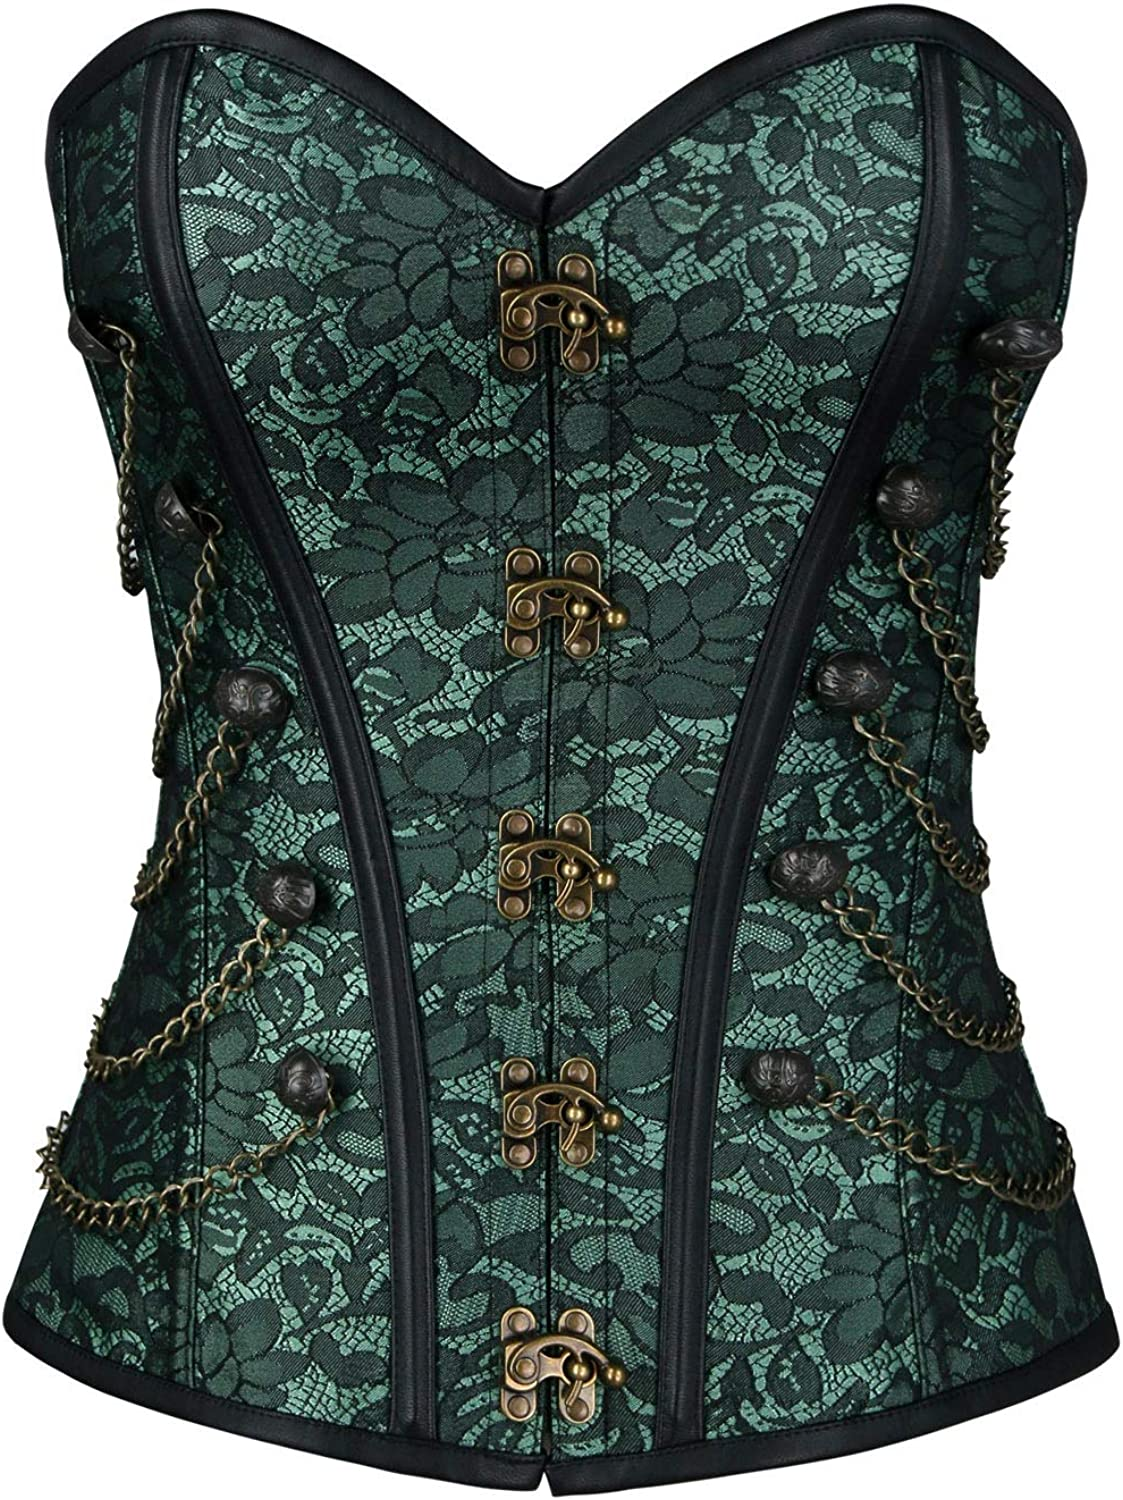 Charmian Womens Spiral Steel Boned Steampunk Gothic Bustier Corset with Chains